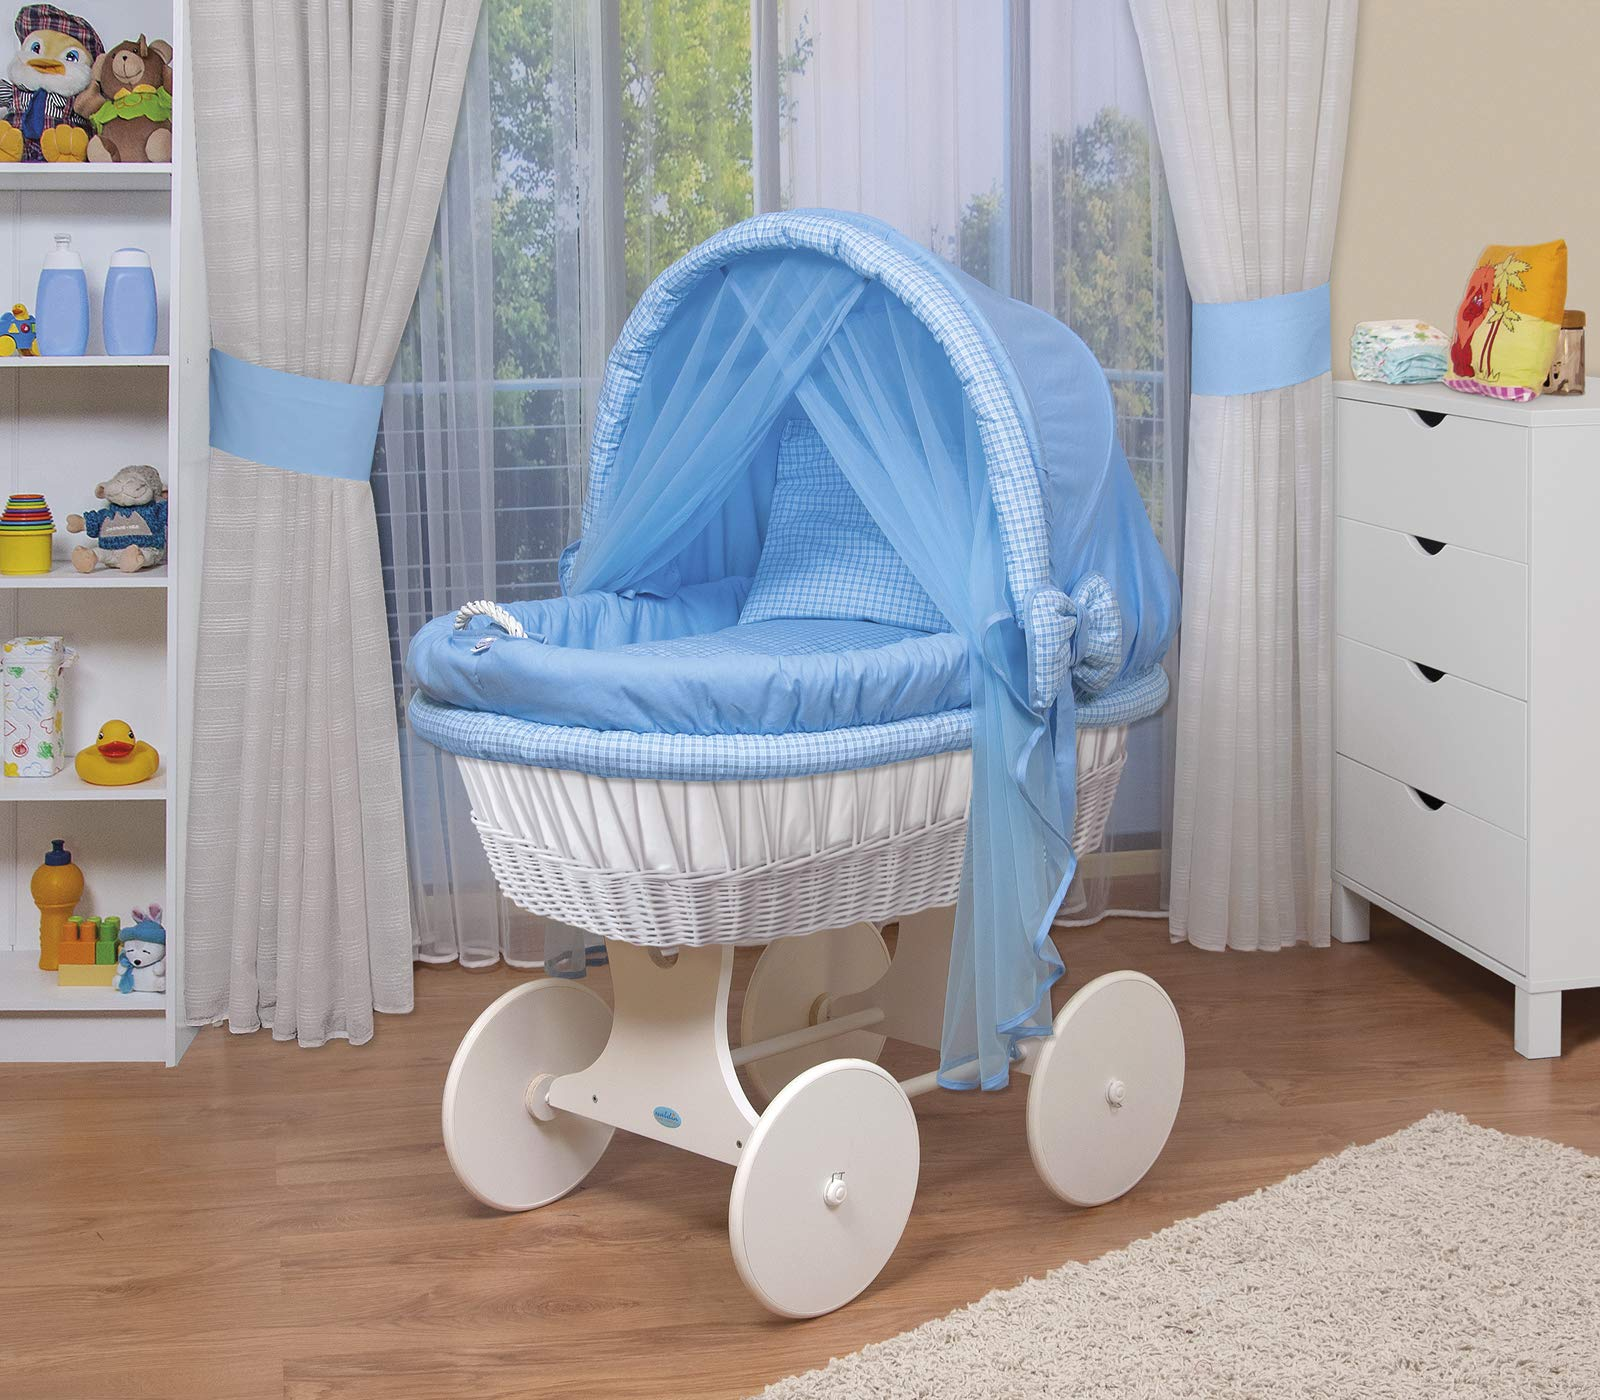 WALDIN Baby wicker cradle,Moses basket,44 models available,white painted stand/wheels,textile colour blue/squared  For more models and colours on Amazon click on WALDIN under the title Bassinet complete with bedding and stand Certified to safety standard EN 1130-1/2 1